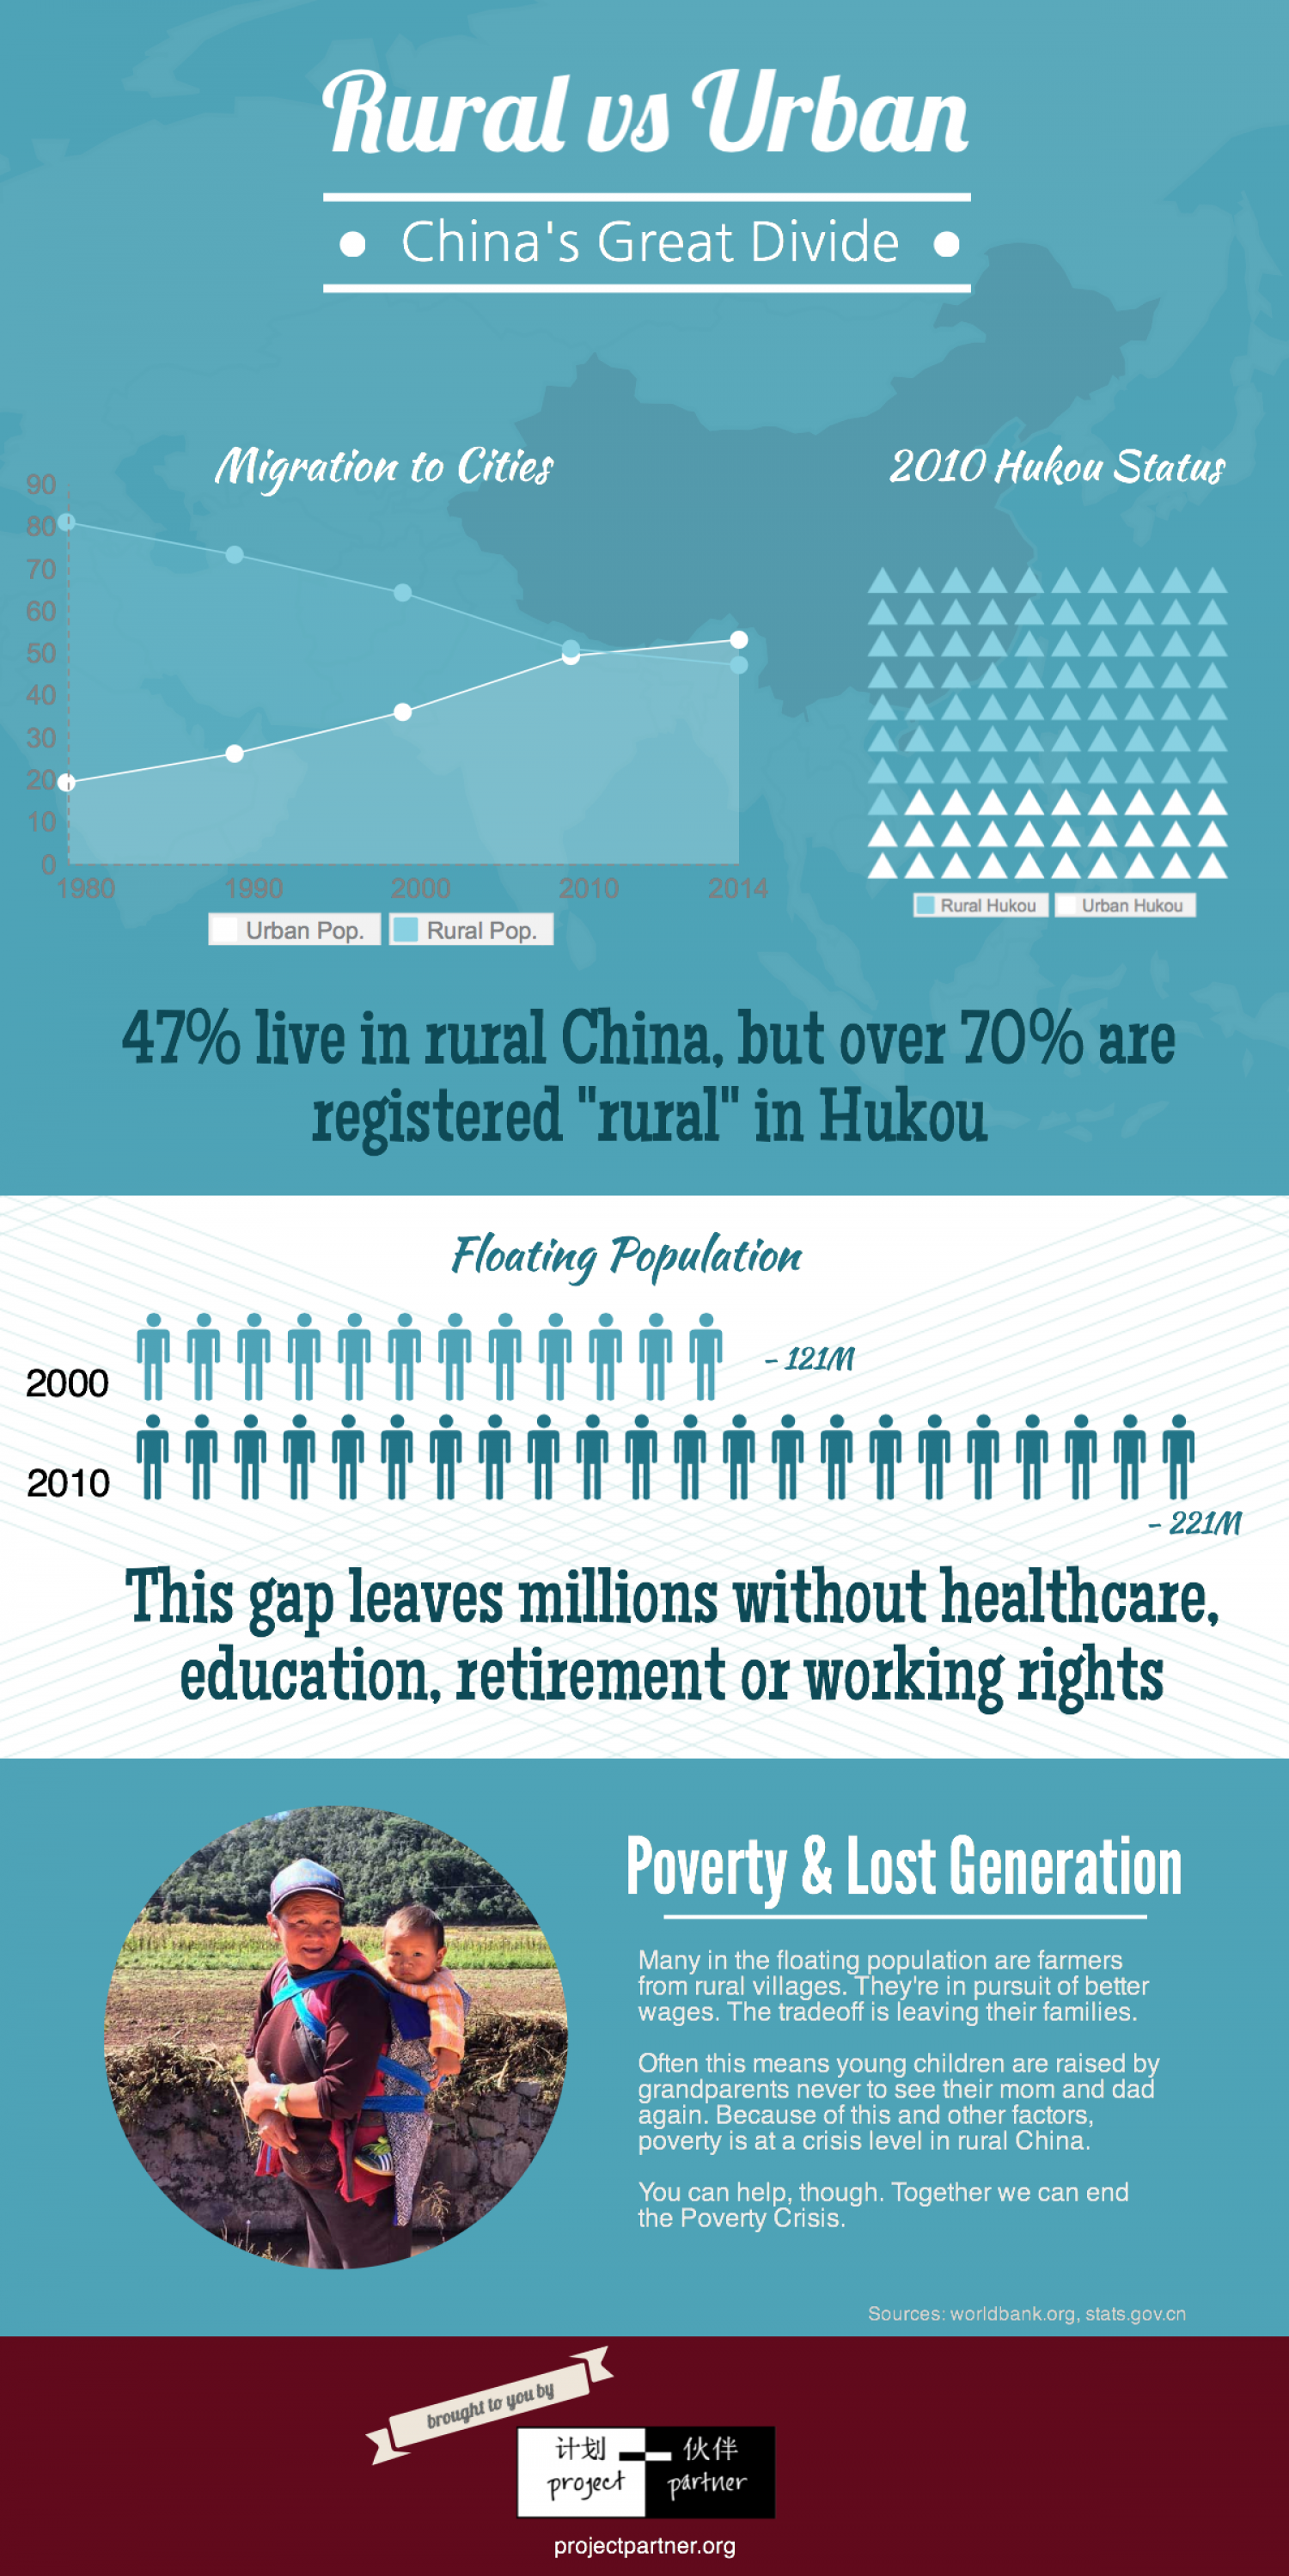 Rural vs Urban: China's Great Divide Infographic